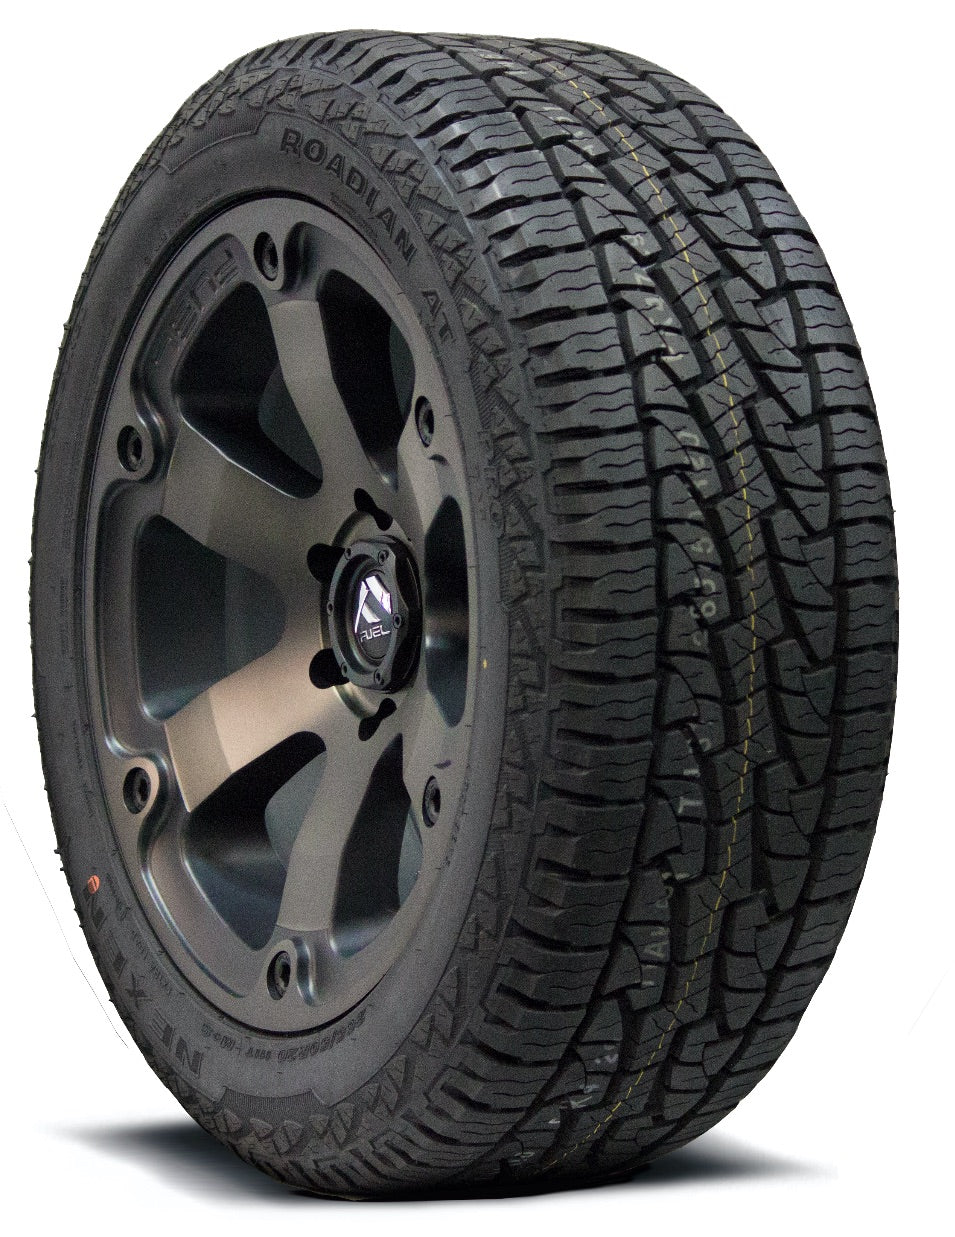 225/75 R15 NEXEN ROADIAN AT PRO RA8 | BLACK LTR 102S